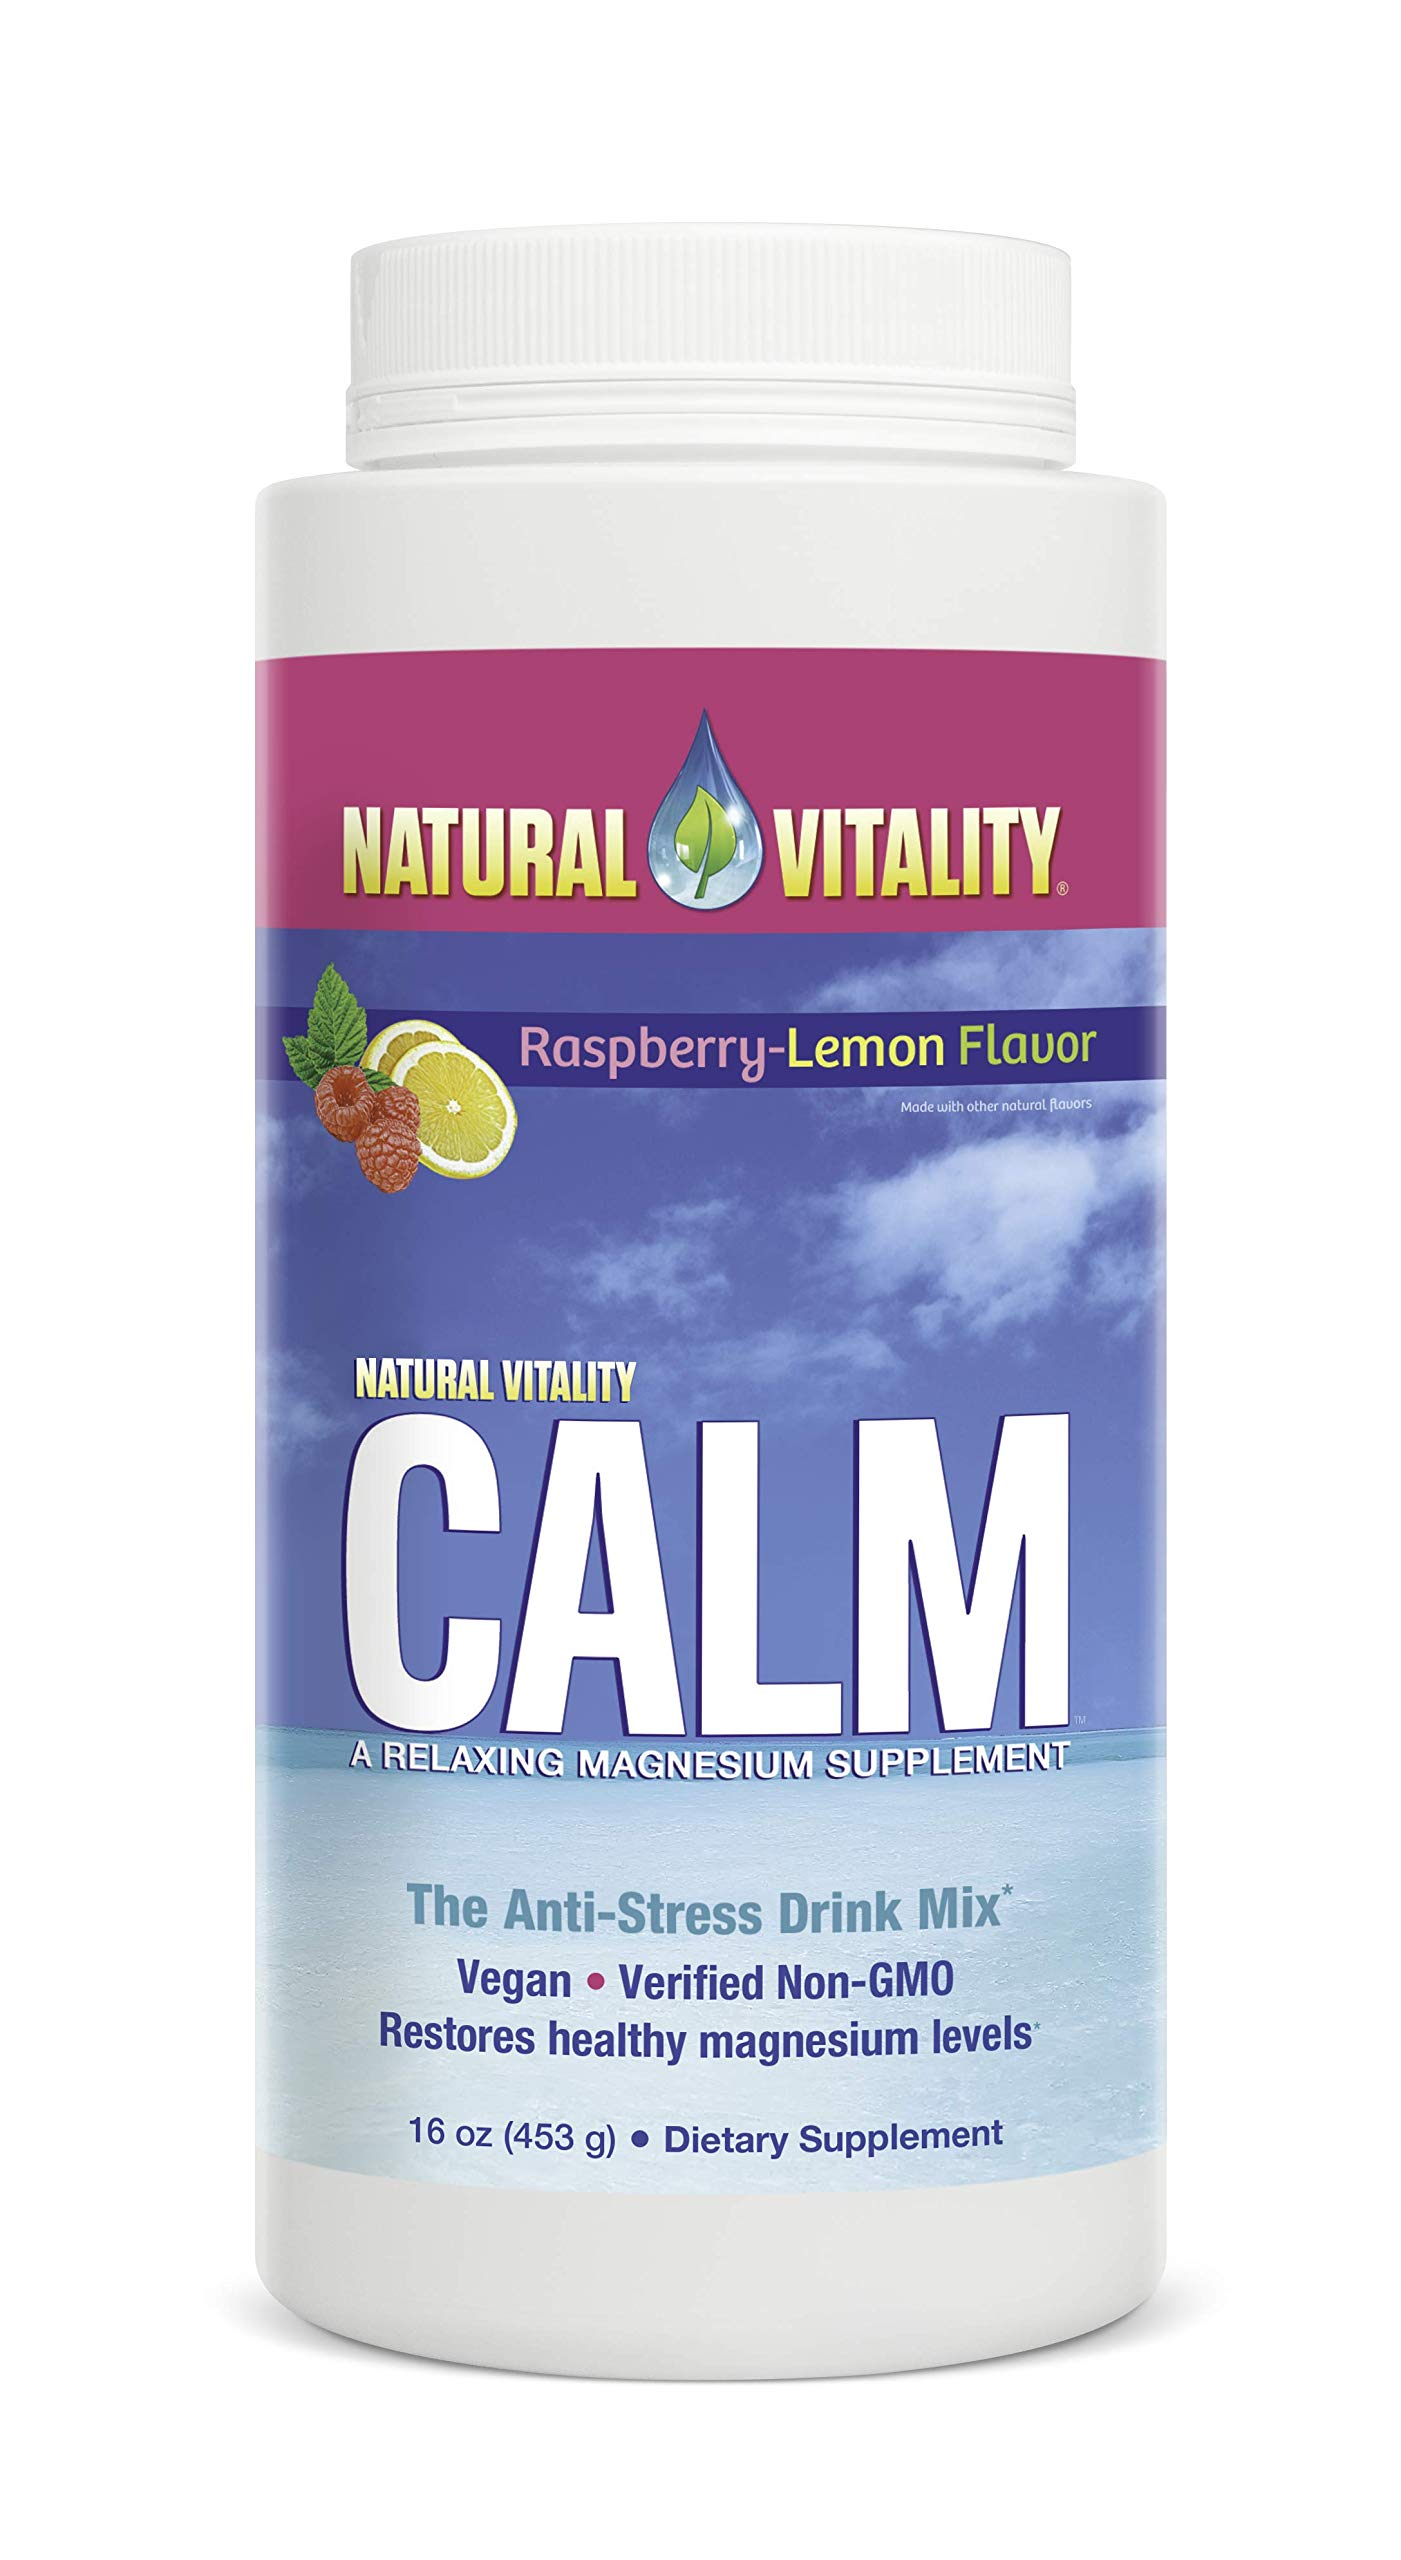 Natural Vitality Calm, The Anti-Stress Drink Mix, Magnesium Supplement Powder, Raspberry Lemon - 16 ounce by Natural Vitality